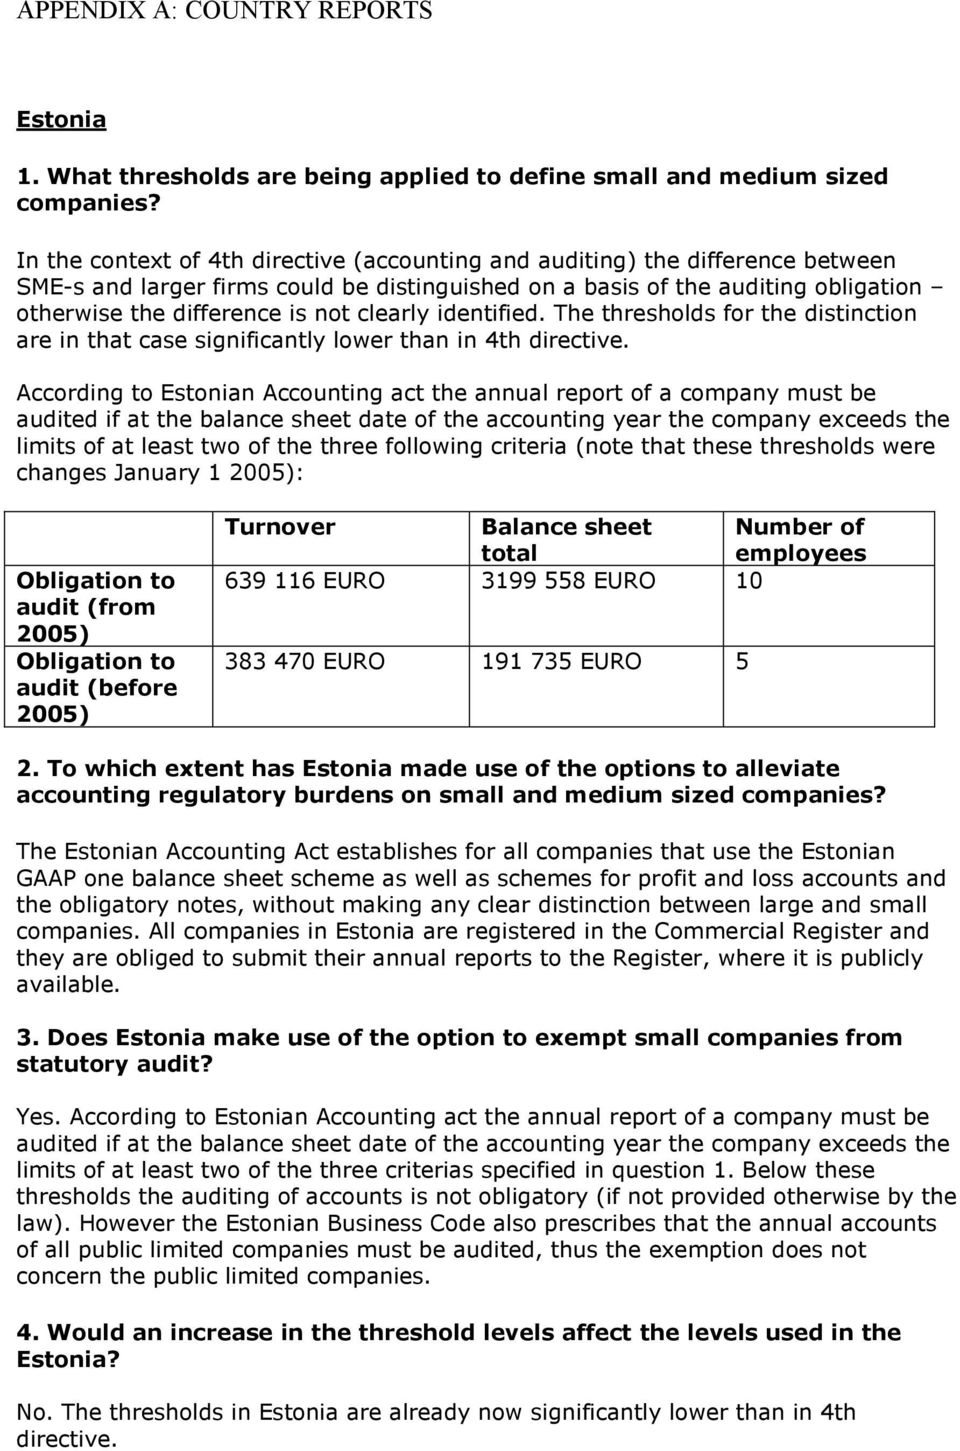 According to Estonian Accounting act the annual report of a must be audited if at the balance sheet date of the accounting year the exceeds the limits of at least two of the three following criteria